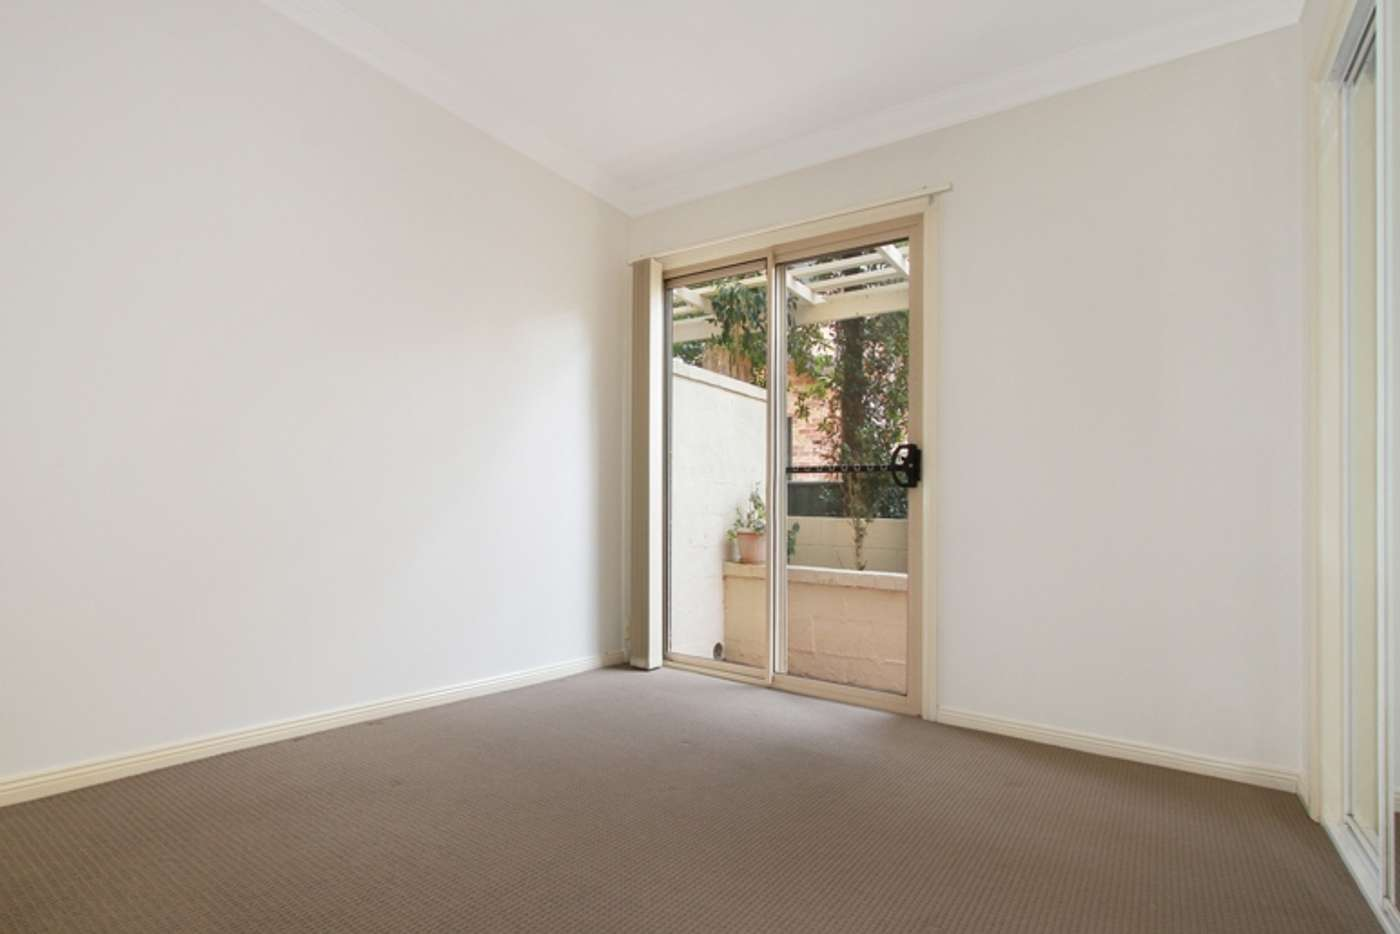 Sixth view of Homely apartment listing, 4/36-38 Loftus Street, Wollongong NSW 2500